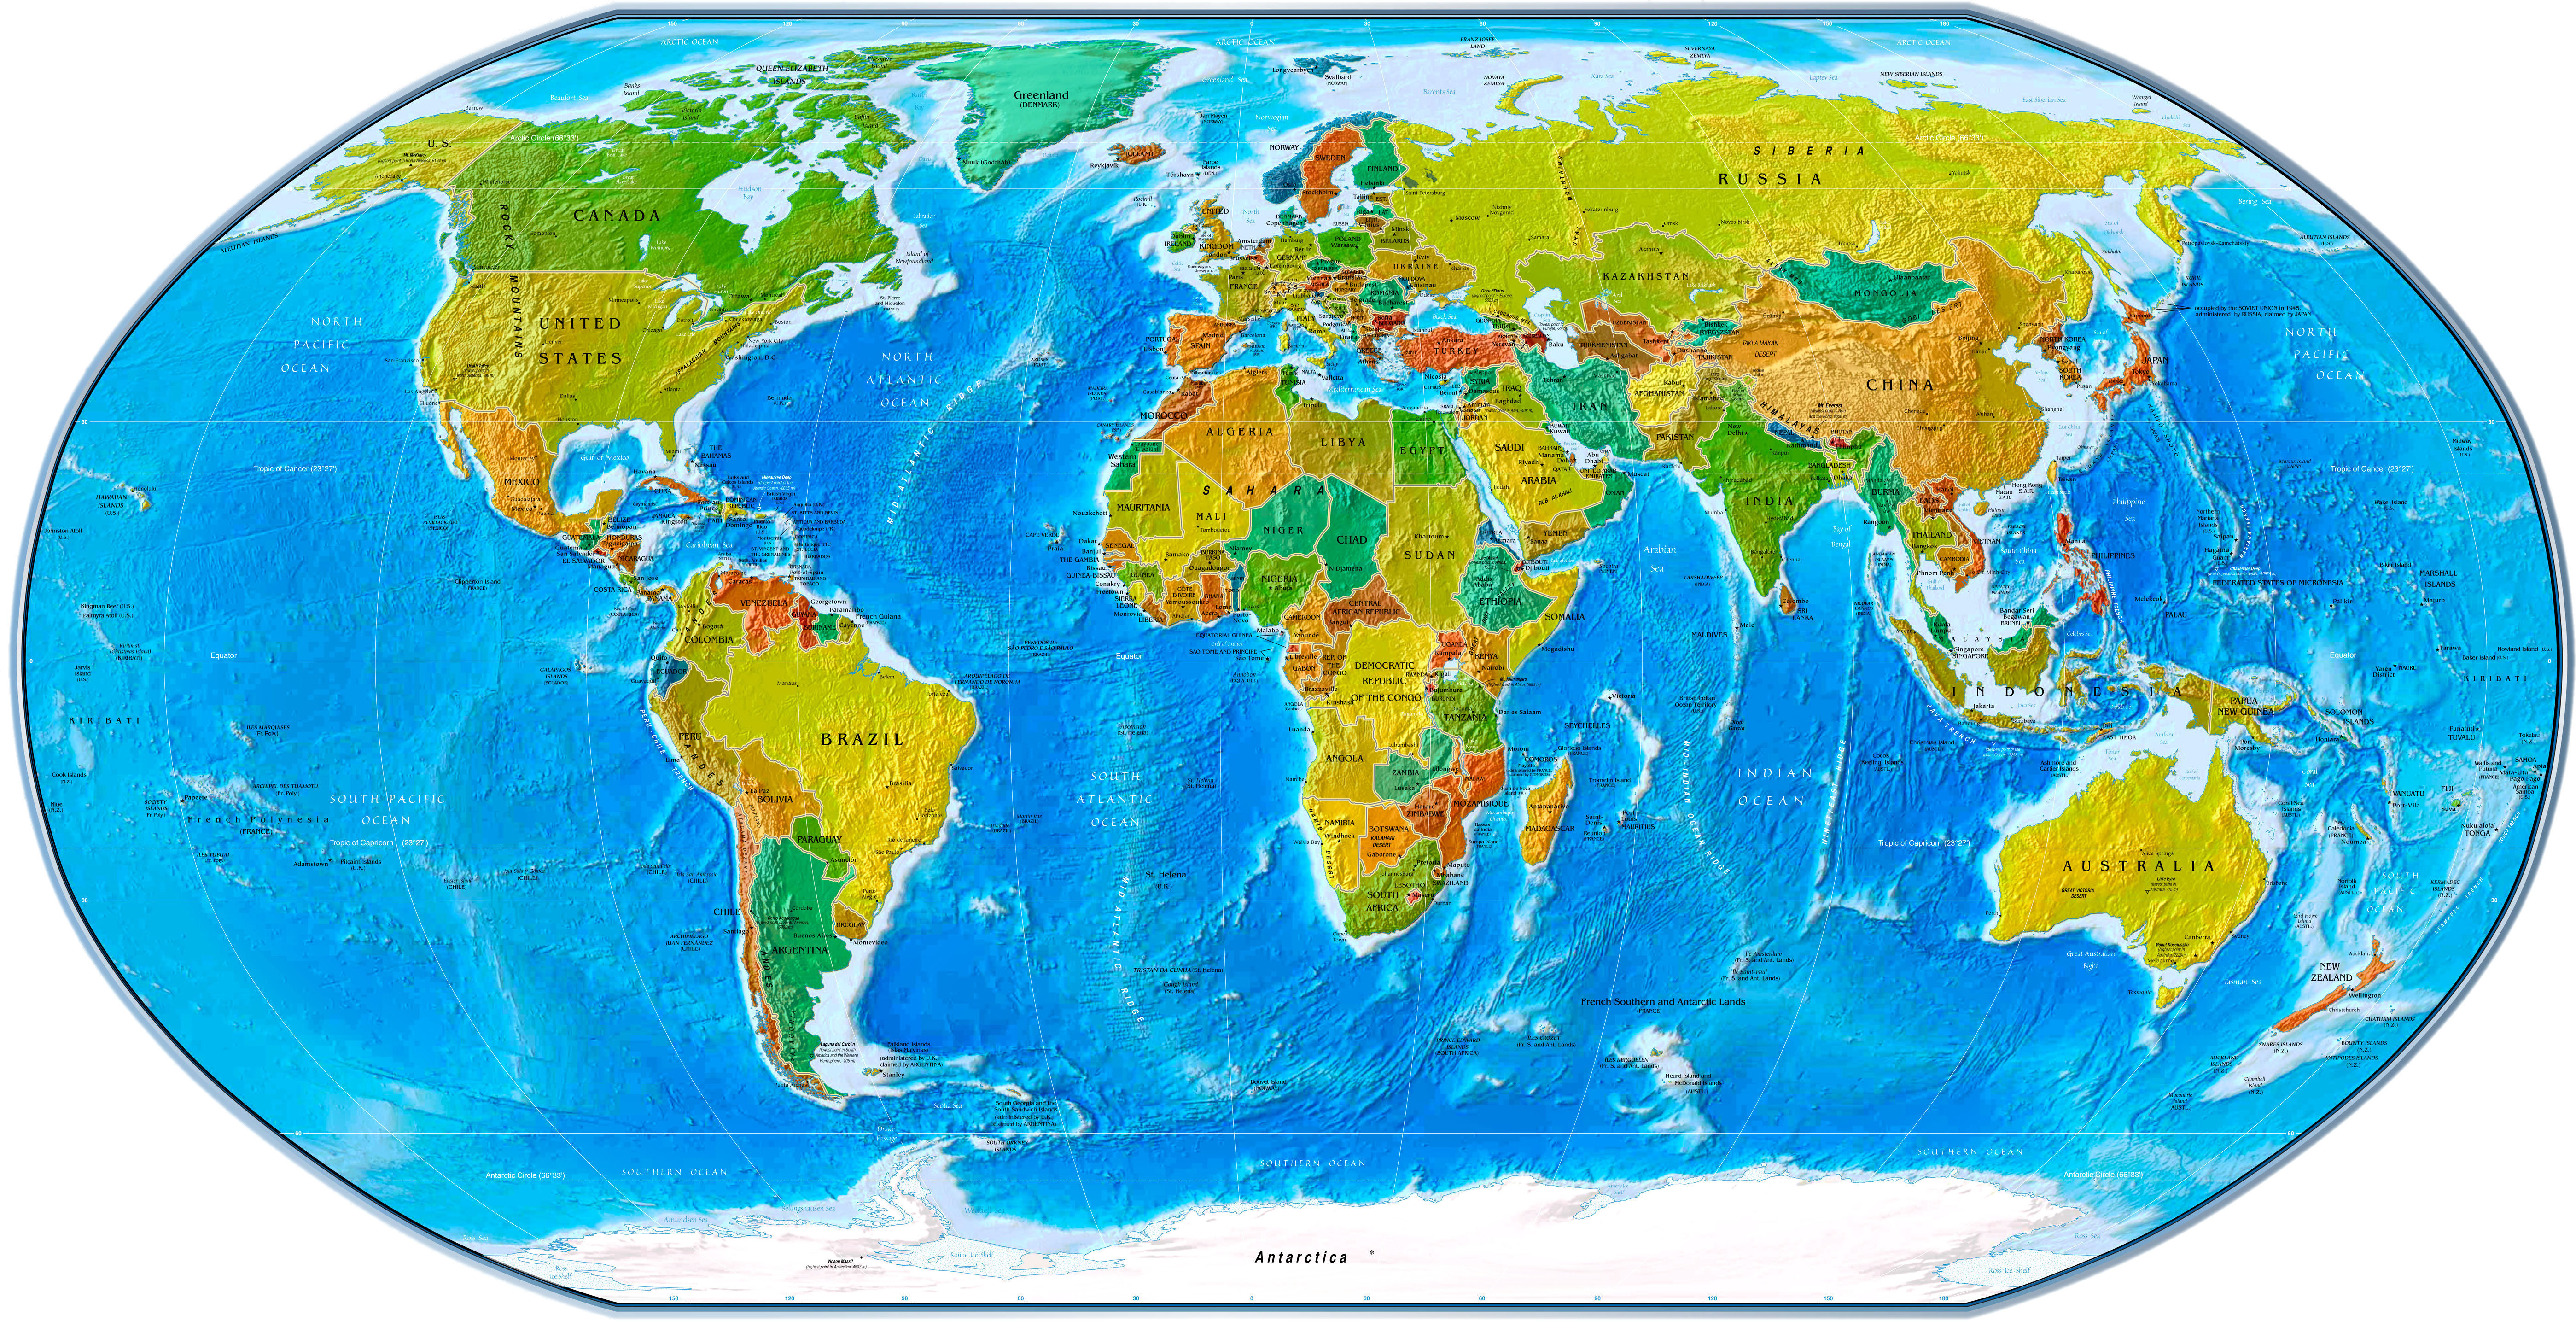 World map labeled clipart graphic black and white stock Labeled world map clipart - ClipartFest graphic black and white stock